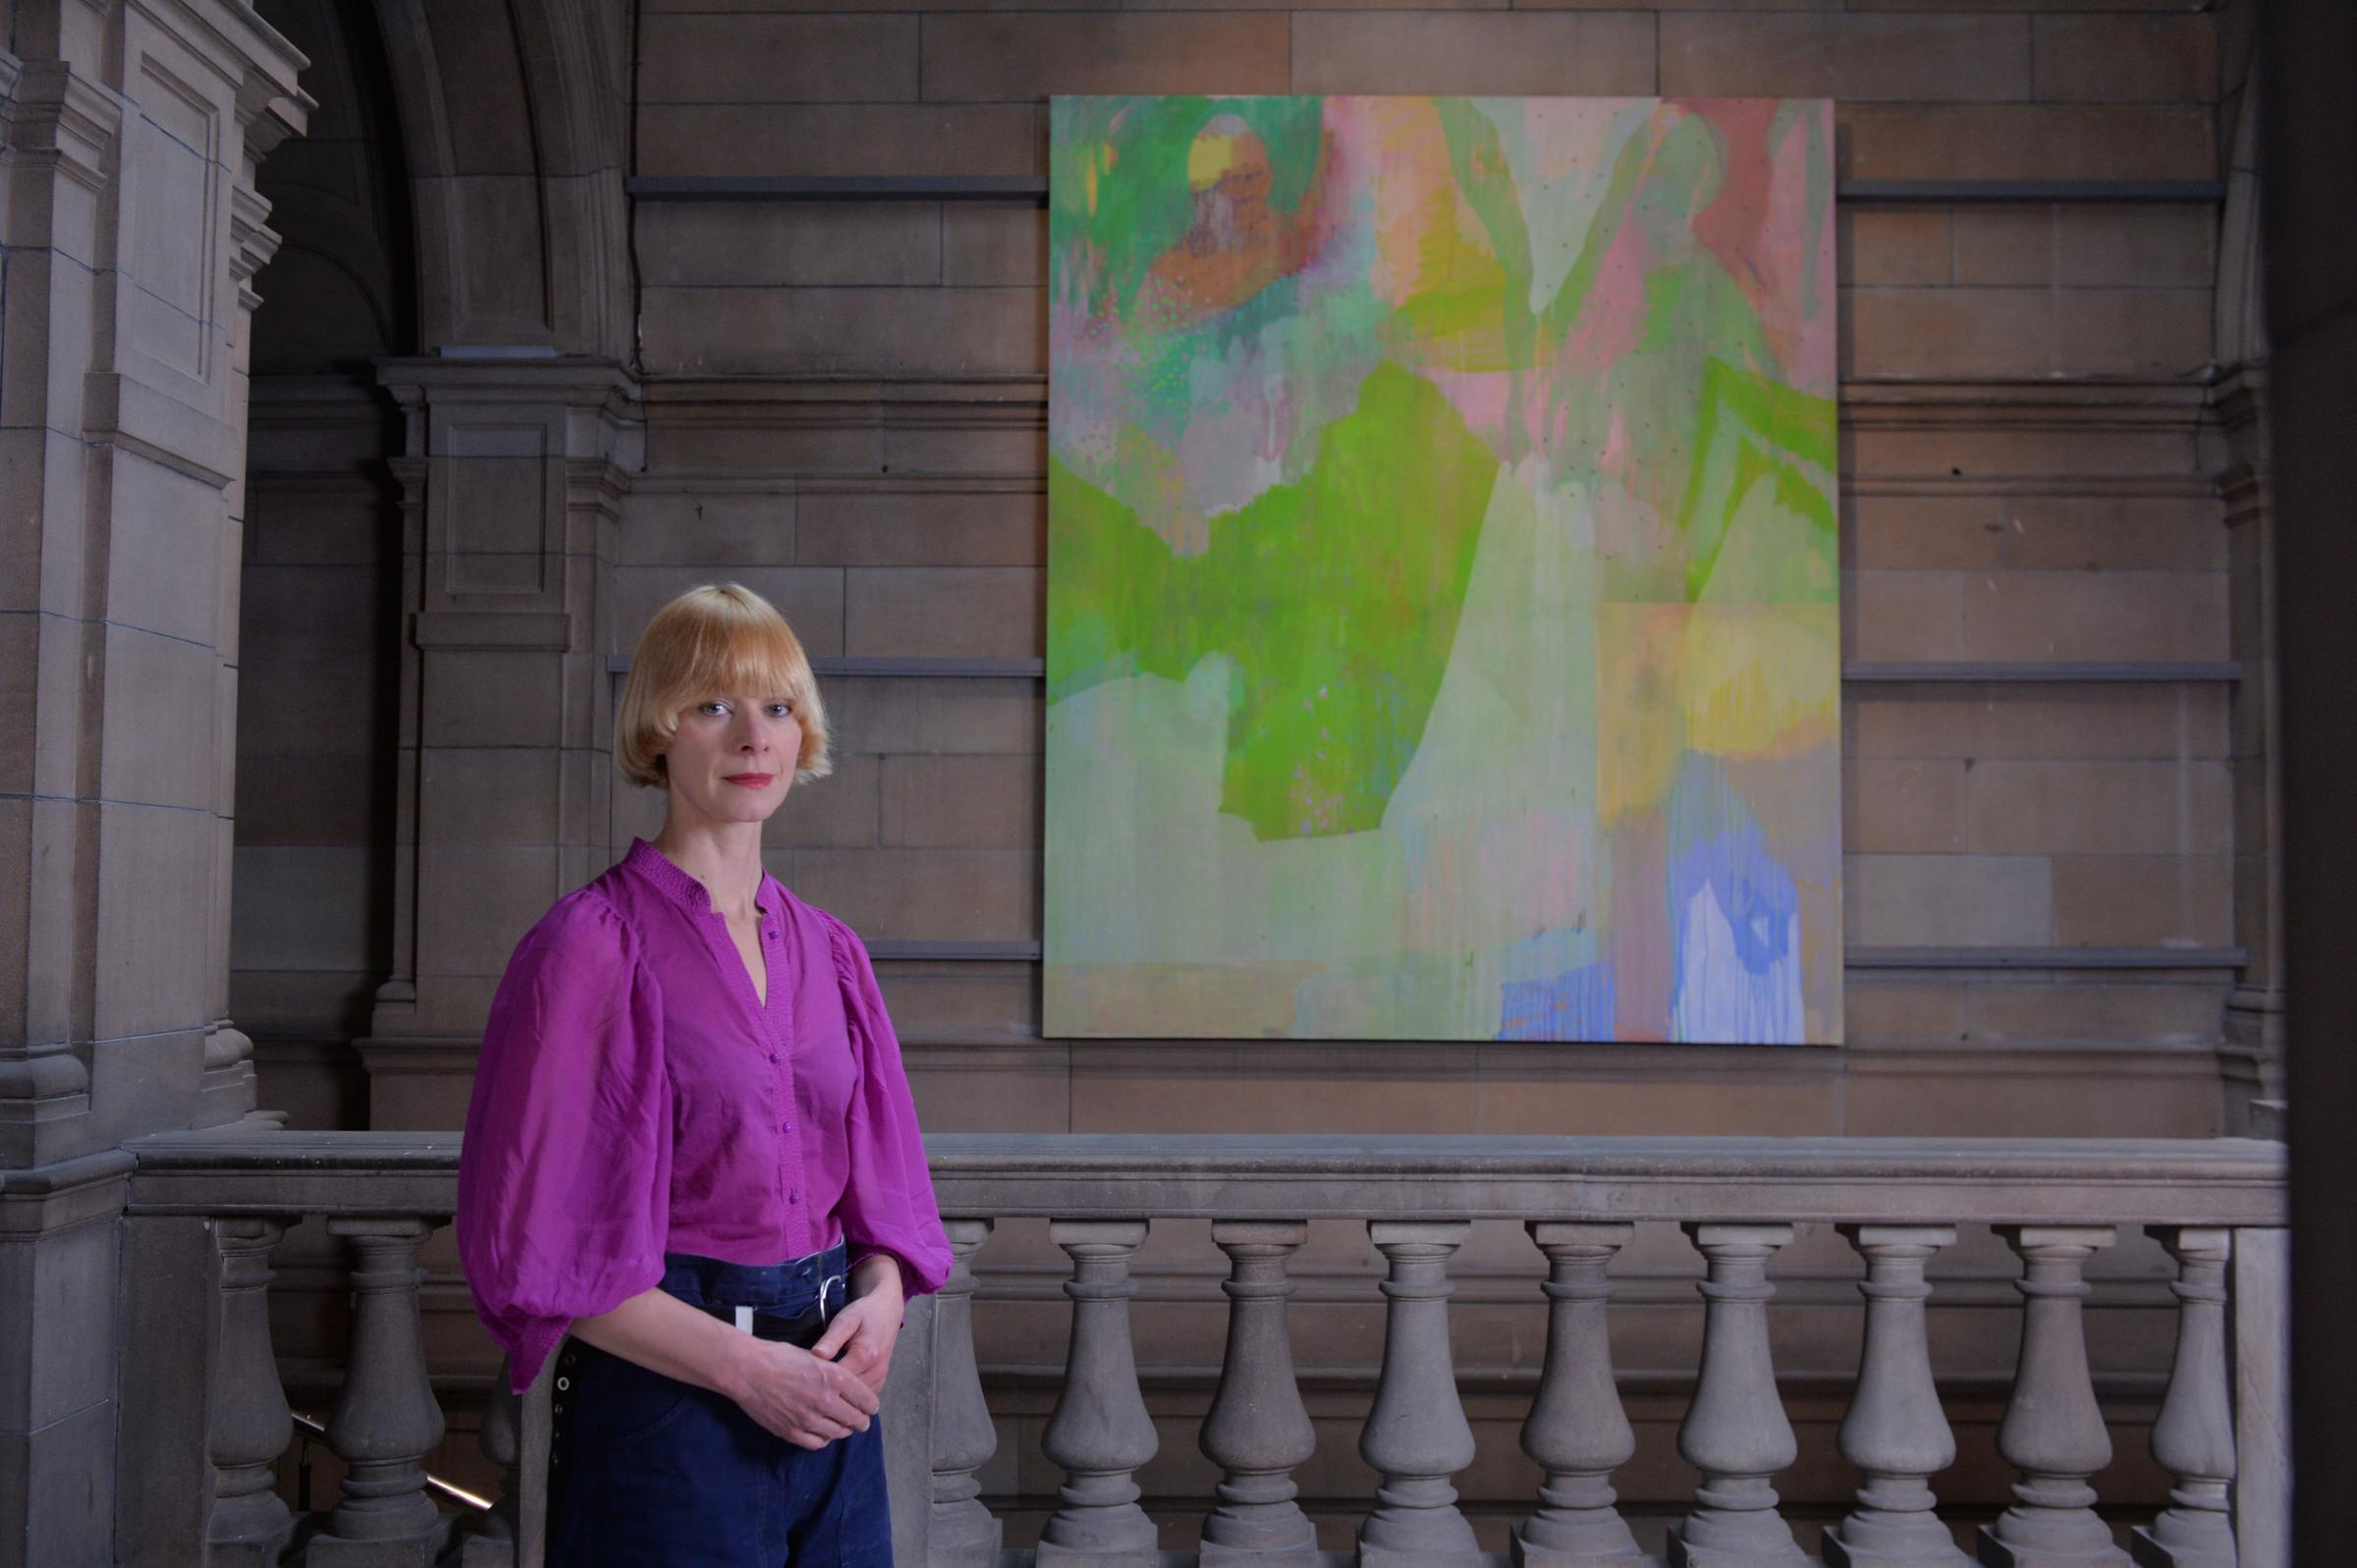 Victoria Morton's painting Soliton goes on show at Kelvingrove